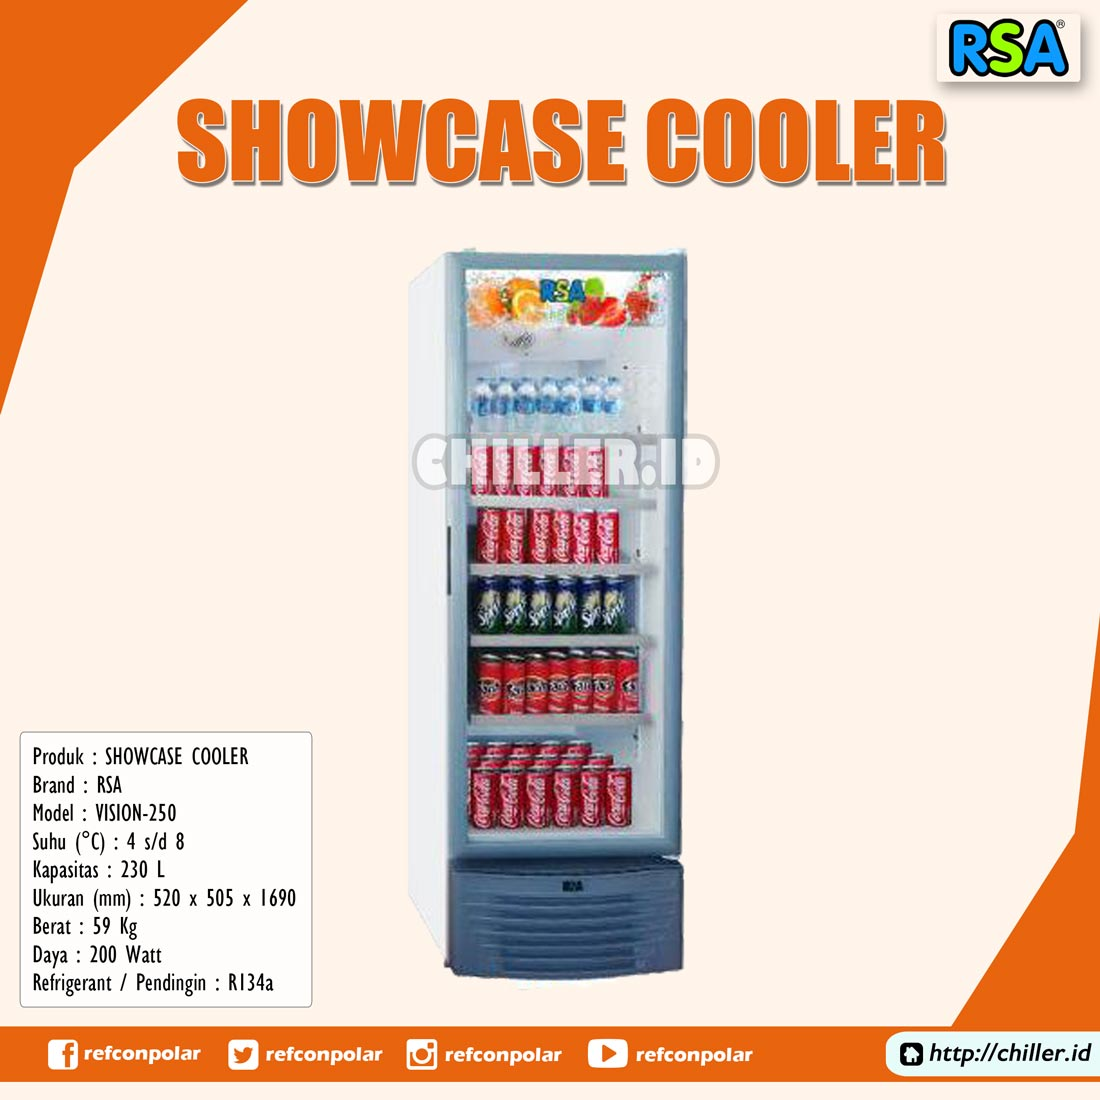 Vision-250 RSA Showcase Cooler